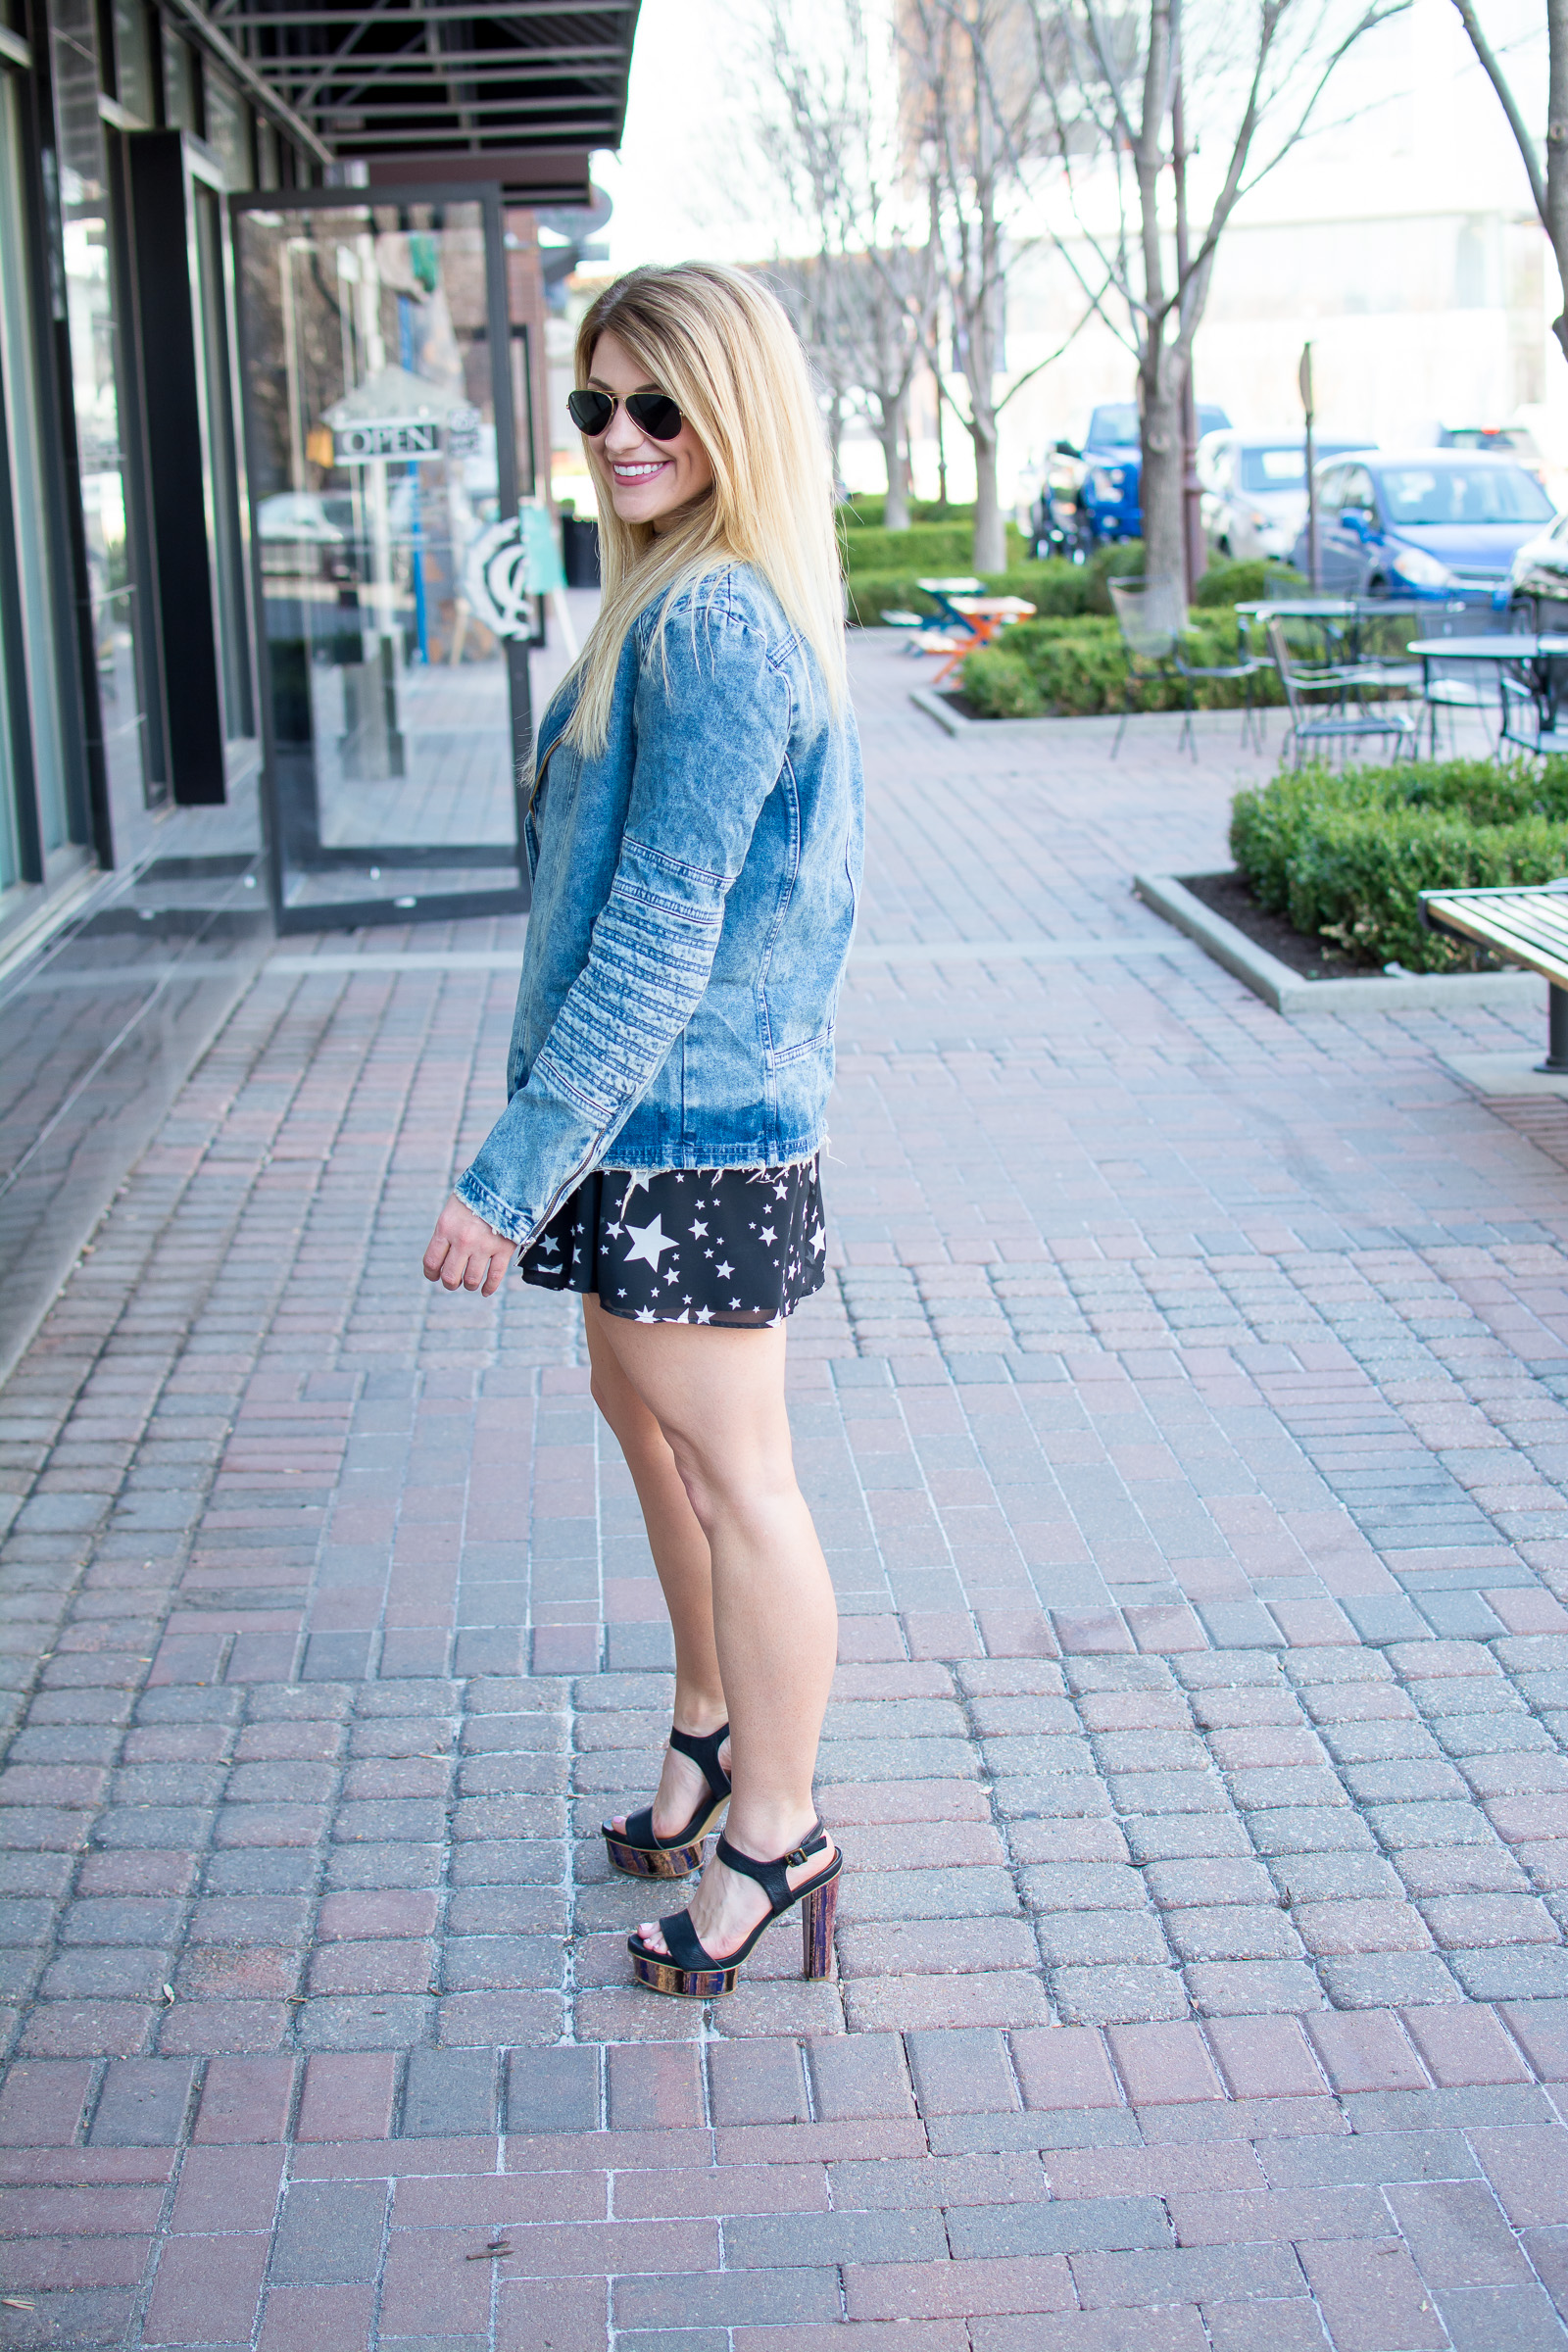 Spring Outfit Idea: Star Print Dress with a Men's Denim Jacket.   Ashley from Le Stylo Rouge